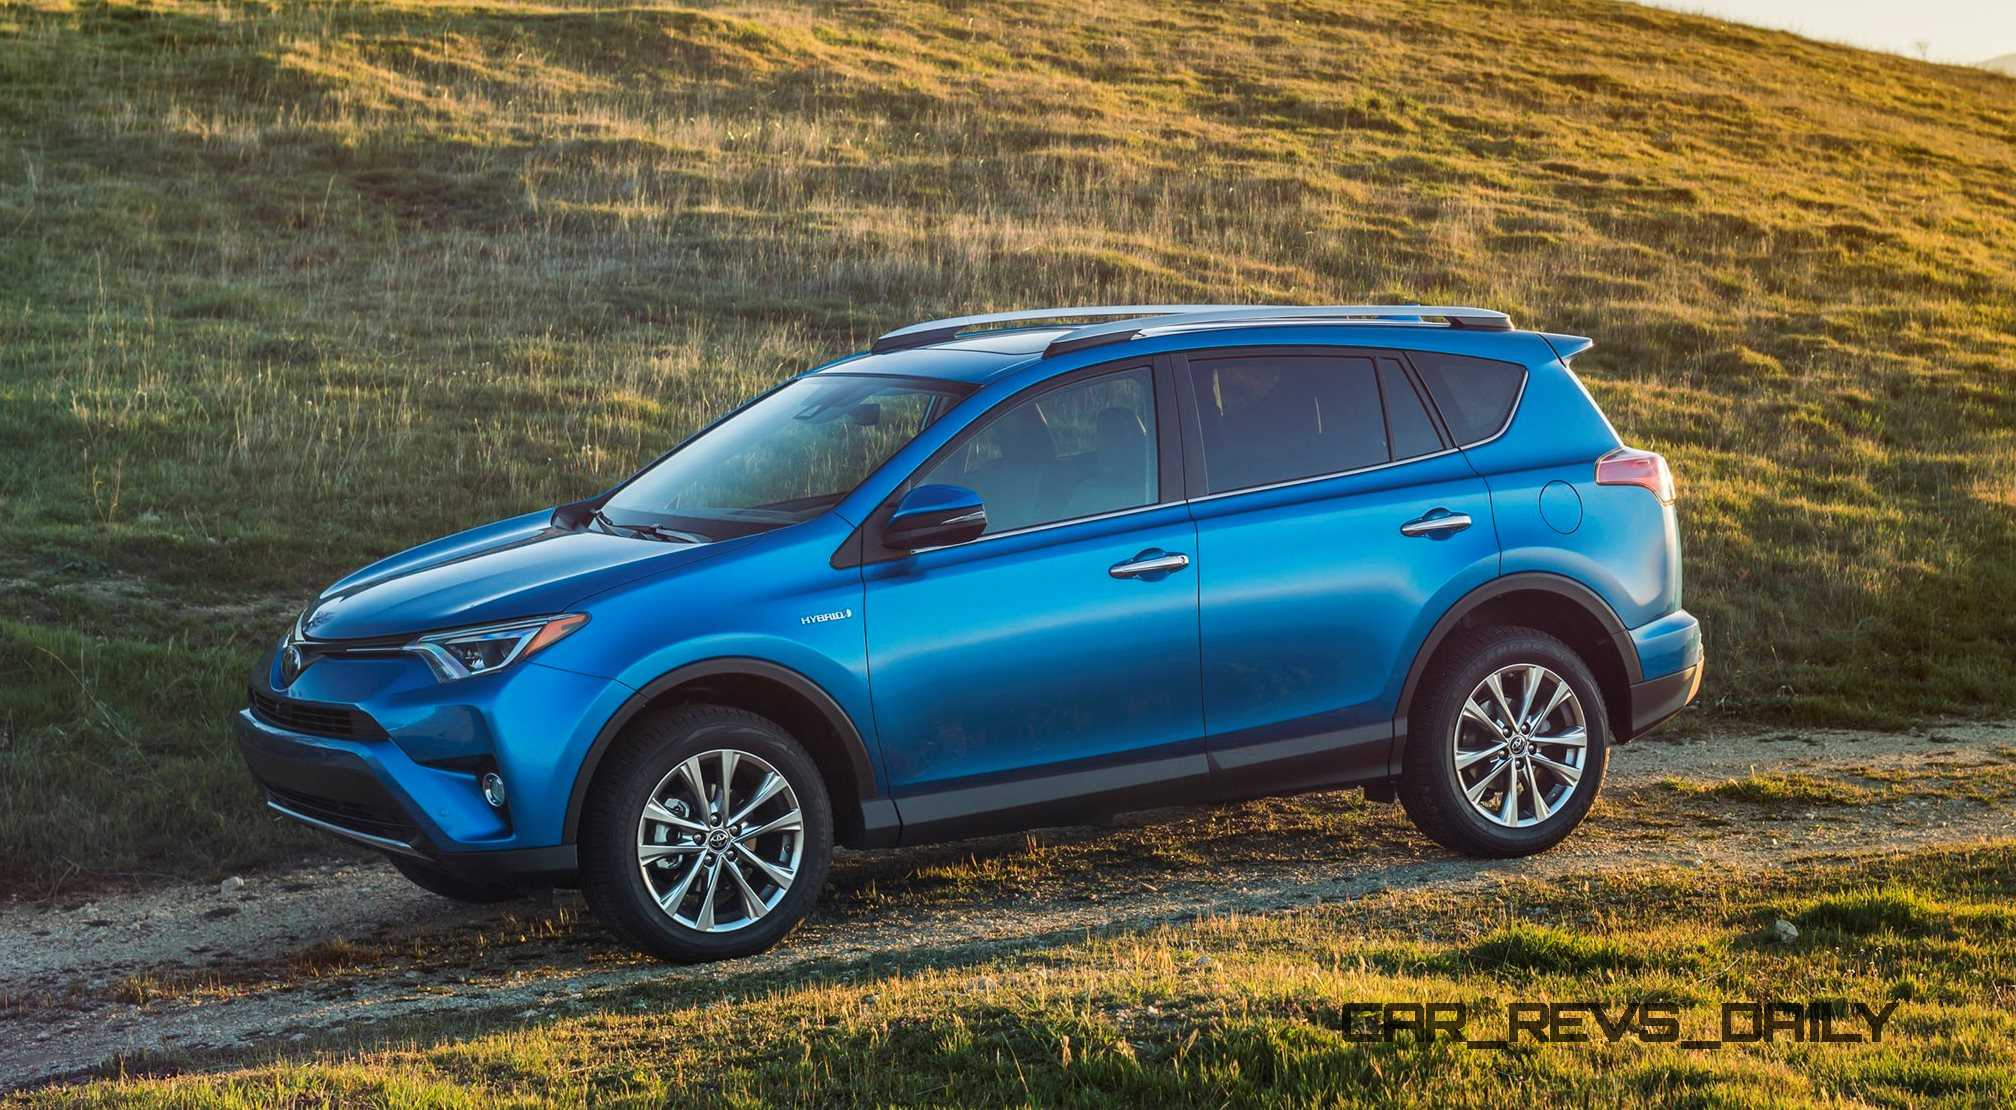 first drive review 2016 toyota rav4 xle hybrid by ben lewis. Black Bedroom Furniture Sets. Home Design Ideas